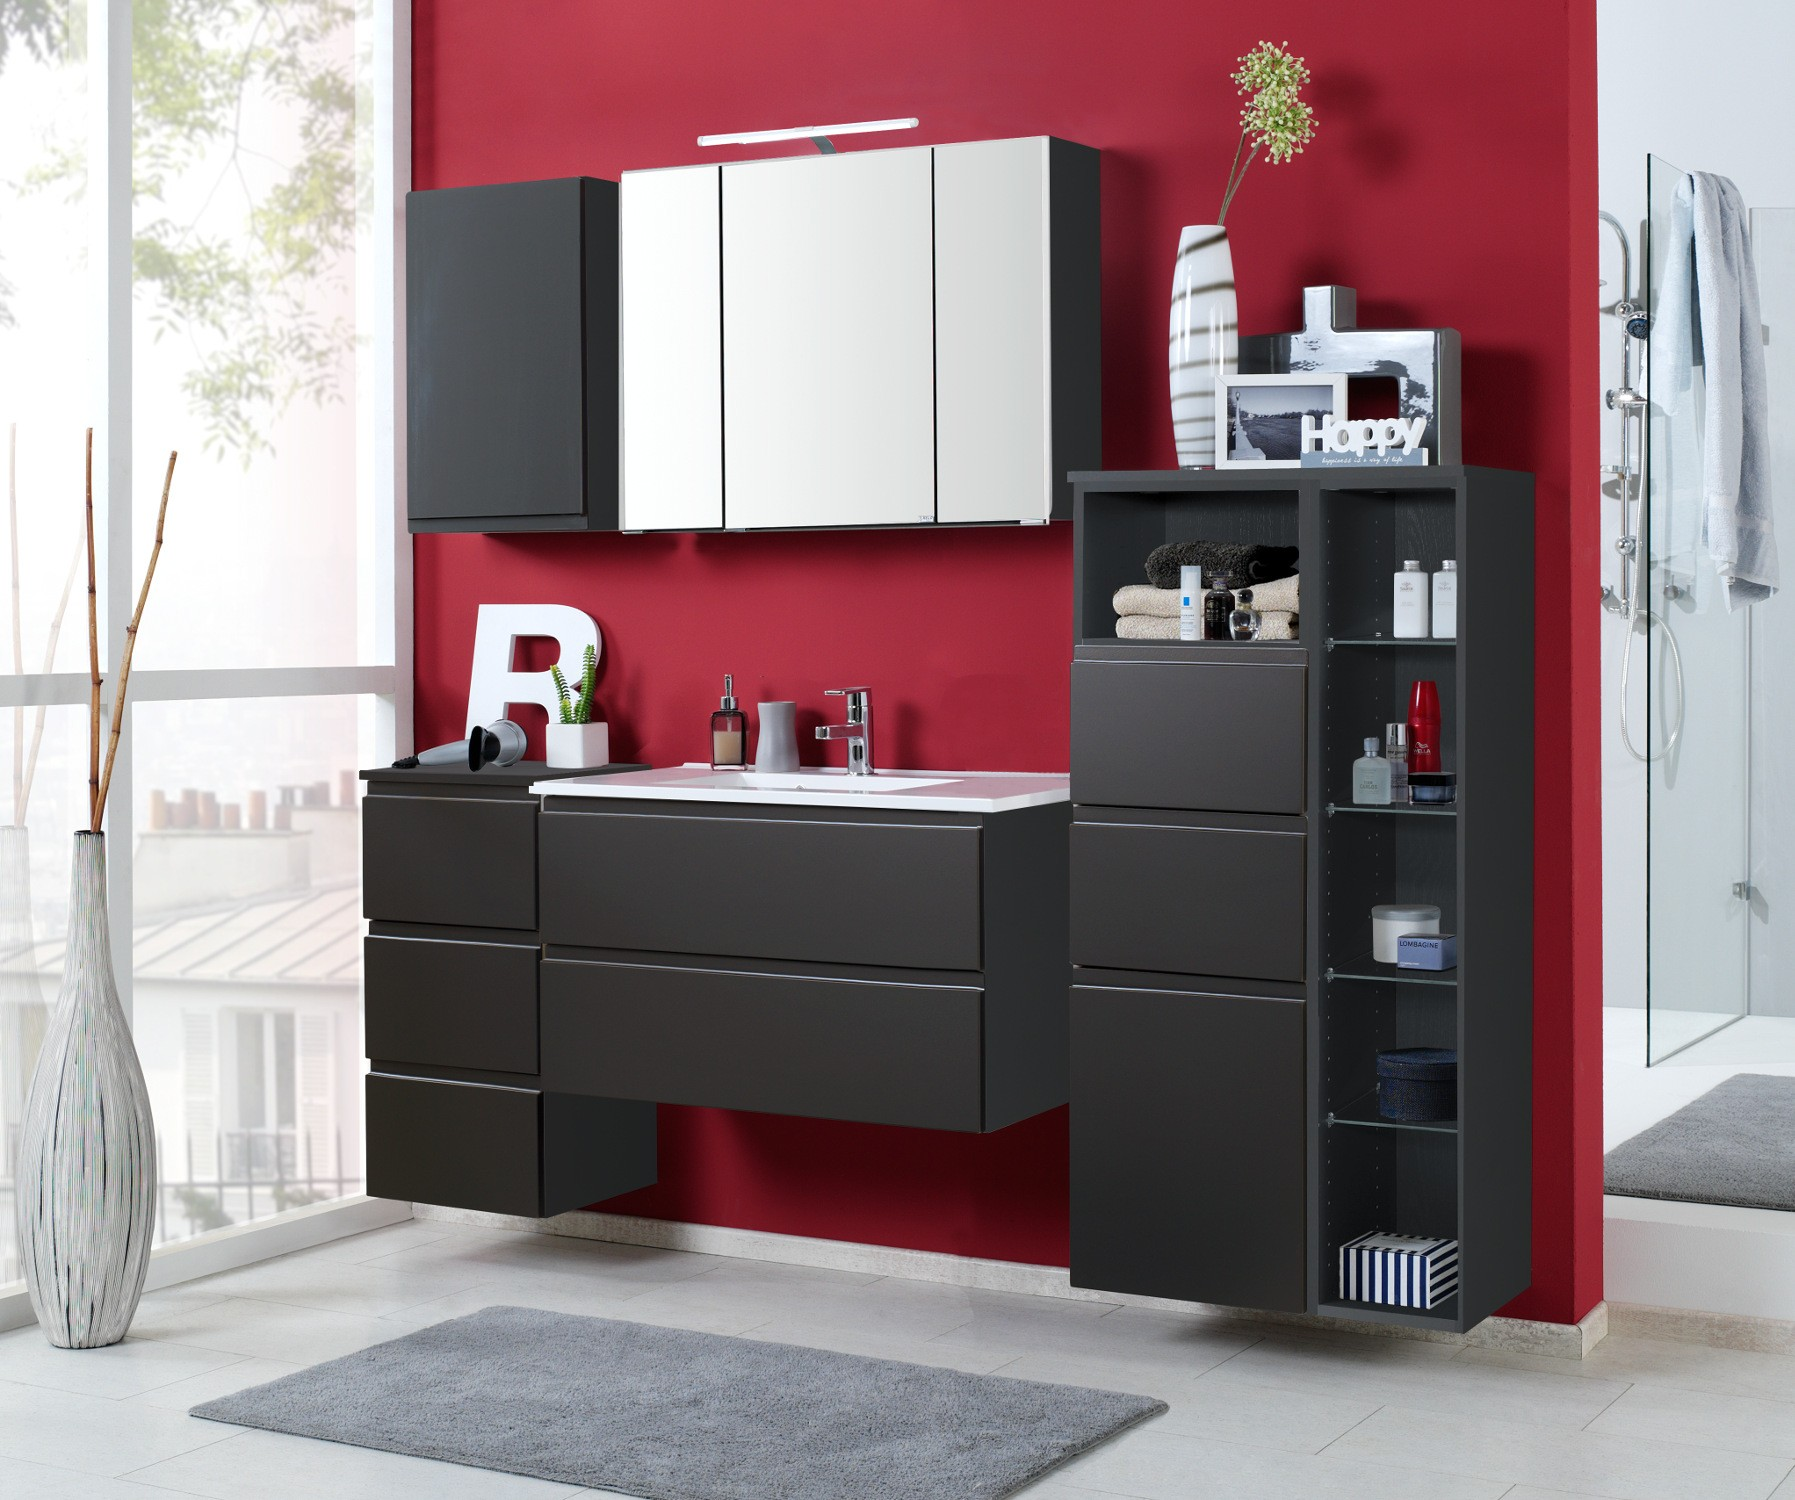 badm bel set cardiff mit waschtisch 7 teilig 185 cm. Black Bedroom Furniture Sets. Home Design Ideas